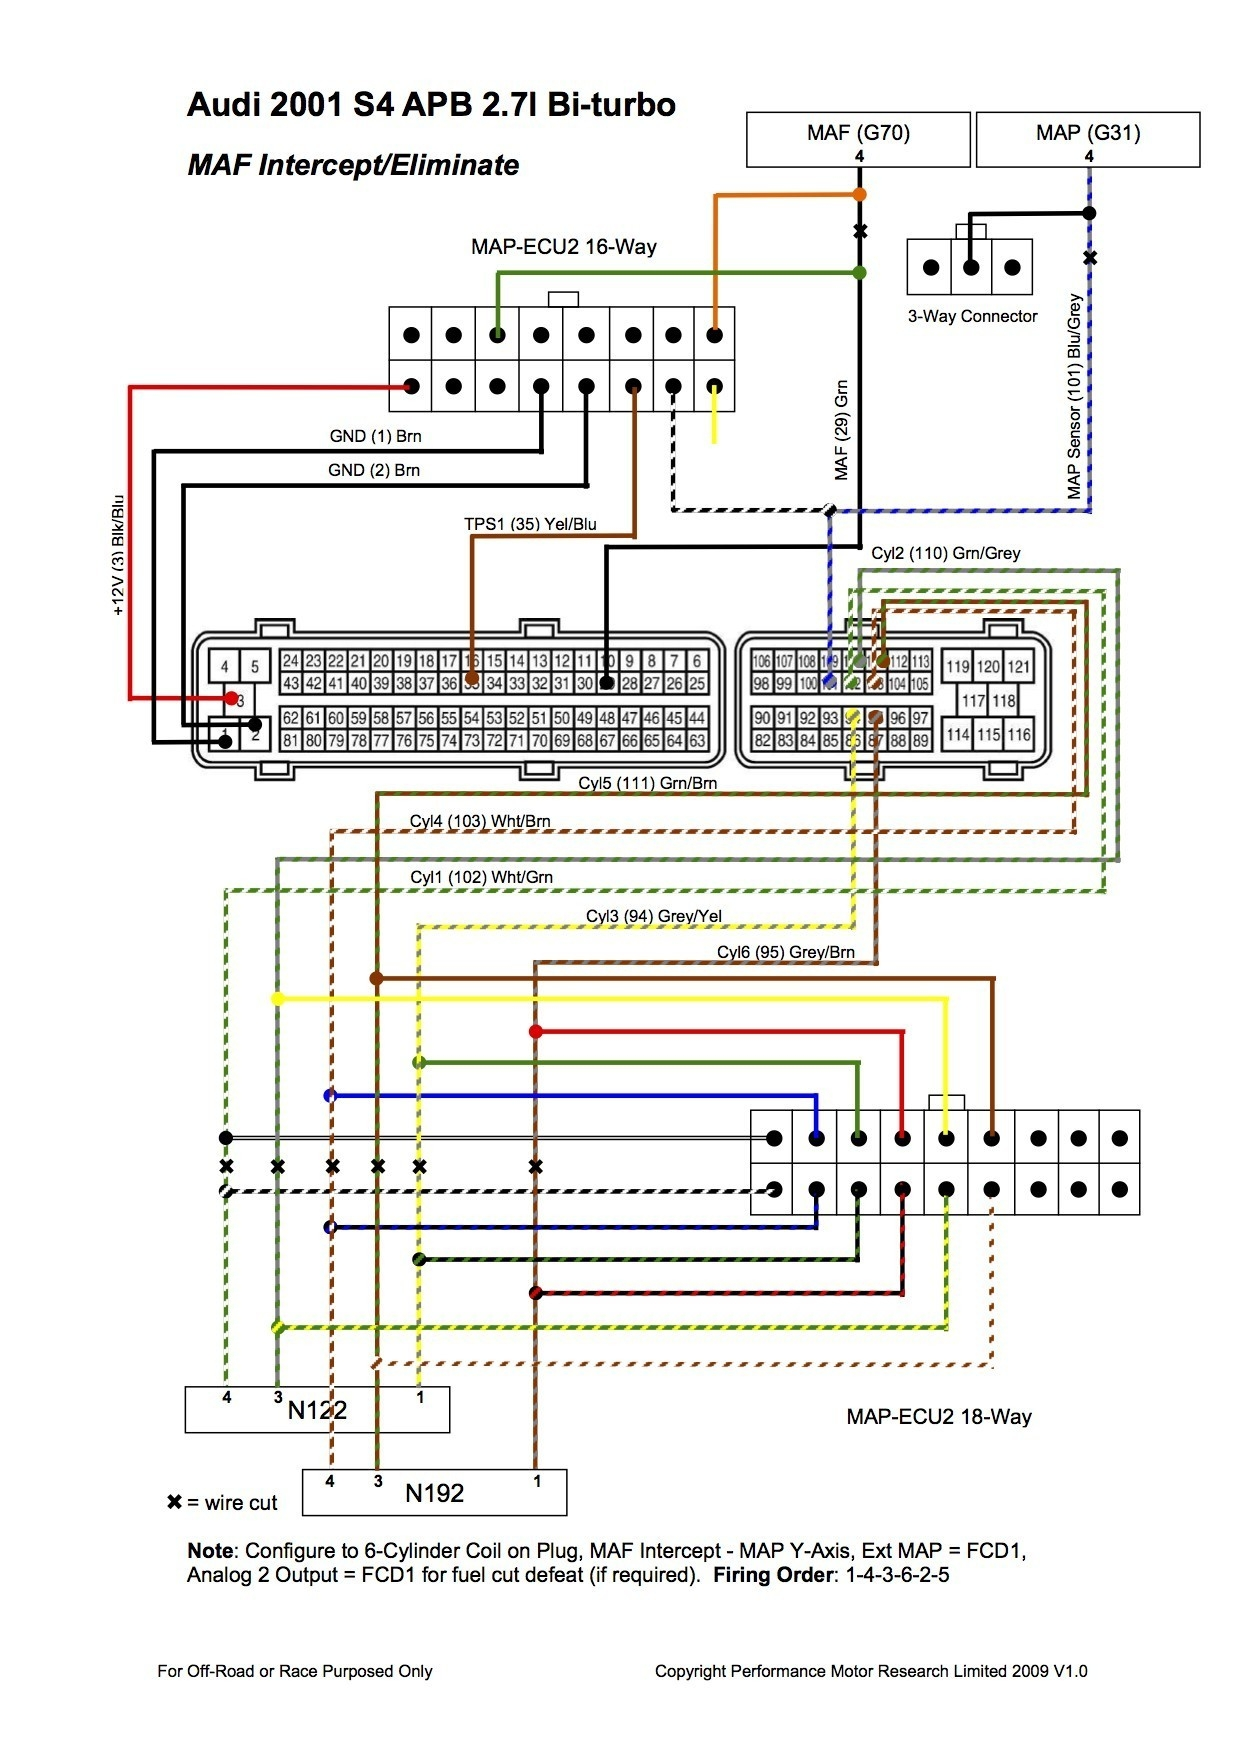 2006 Dodge Ram Radio Wiring Diagram | Free Wiring Diagram